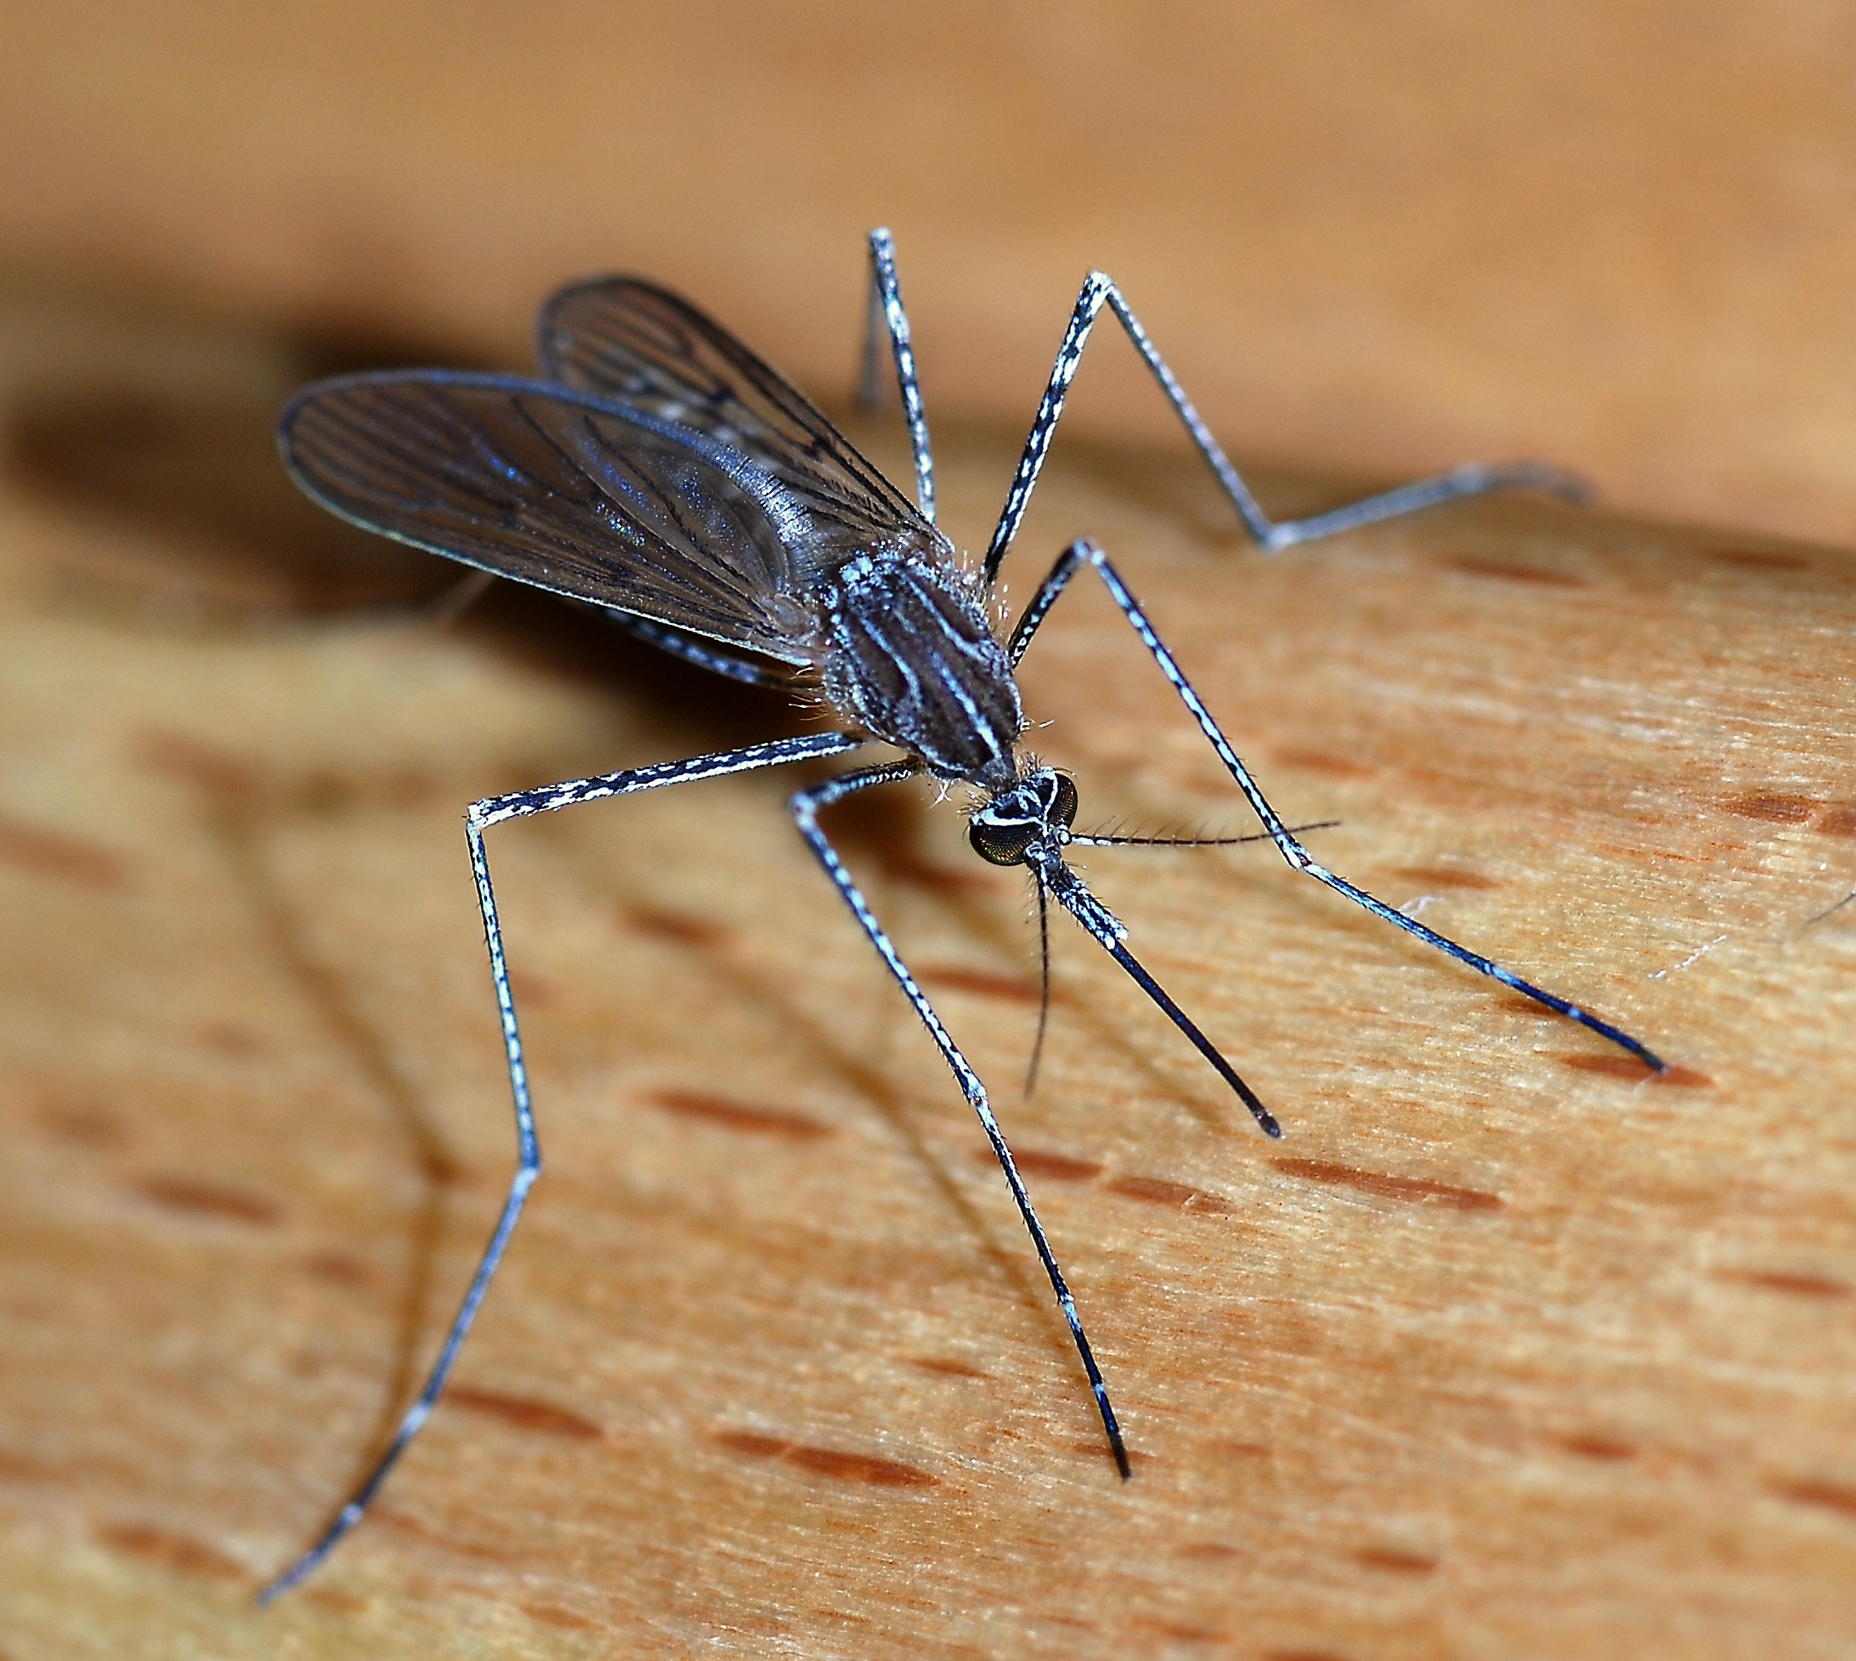 http://upload.wikimedia.org/wikipedia/commons/d/dc/Mosquito_2007-2.jpg